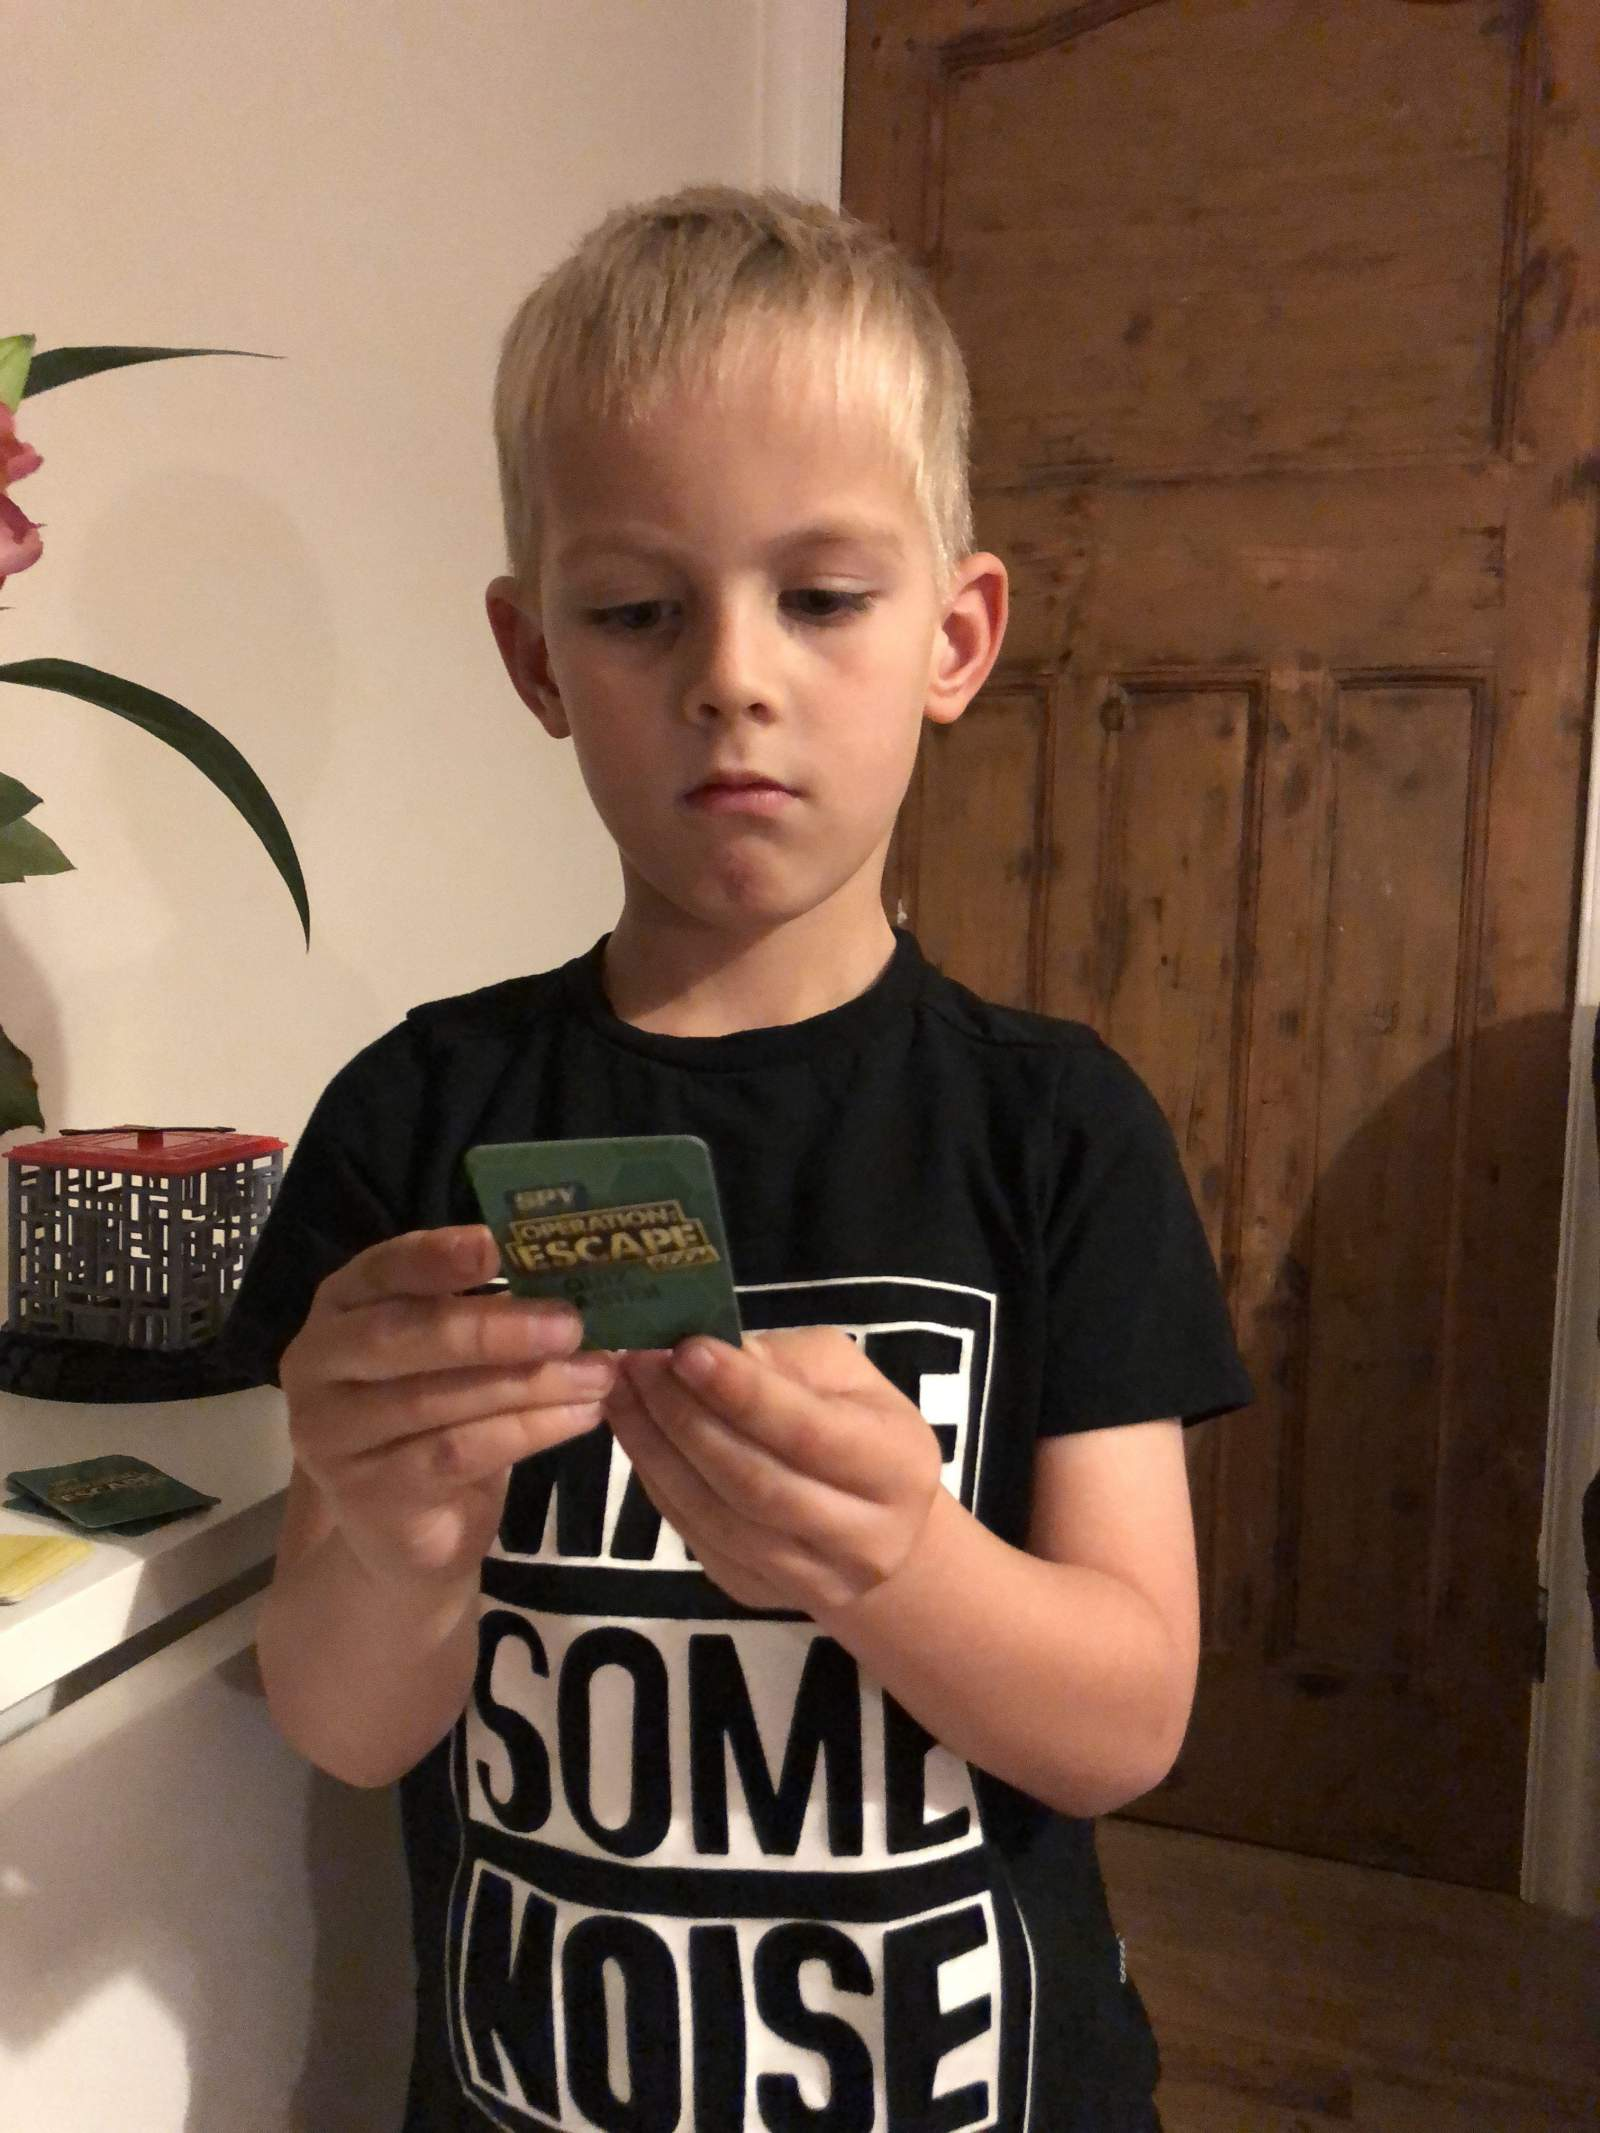 operation escape room game reading a quiz master card